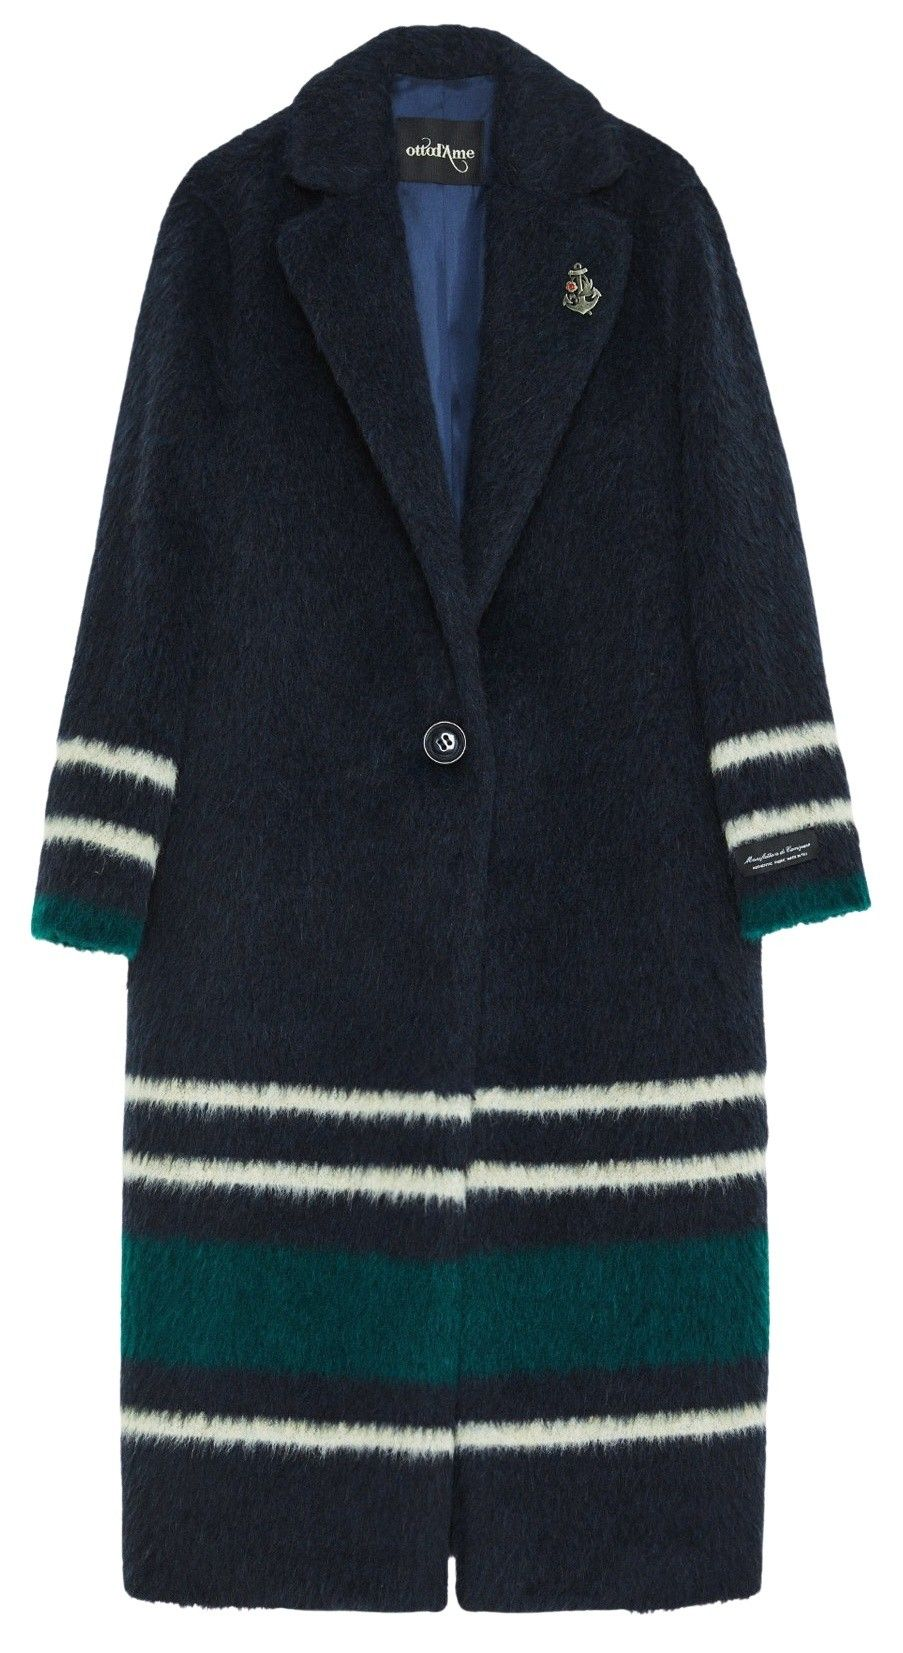 OTTOD´AME - Damen Mantel - Giacca Jacket - Navy with stripes